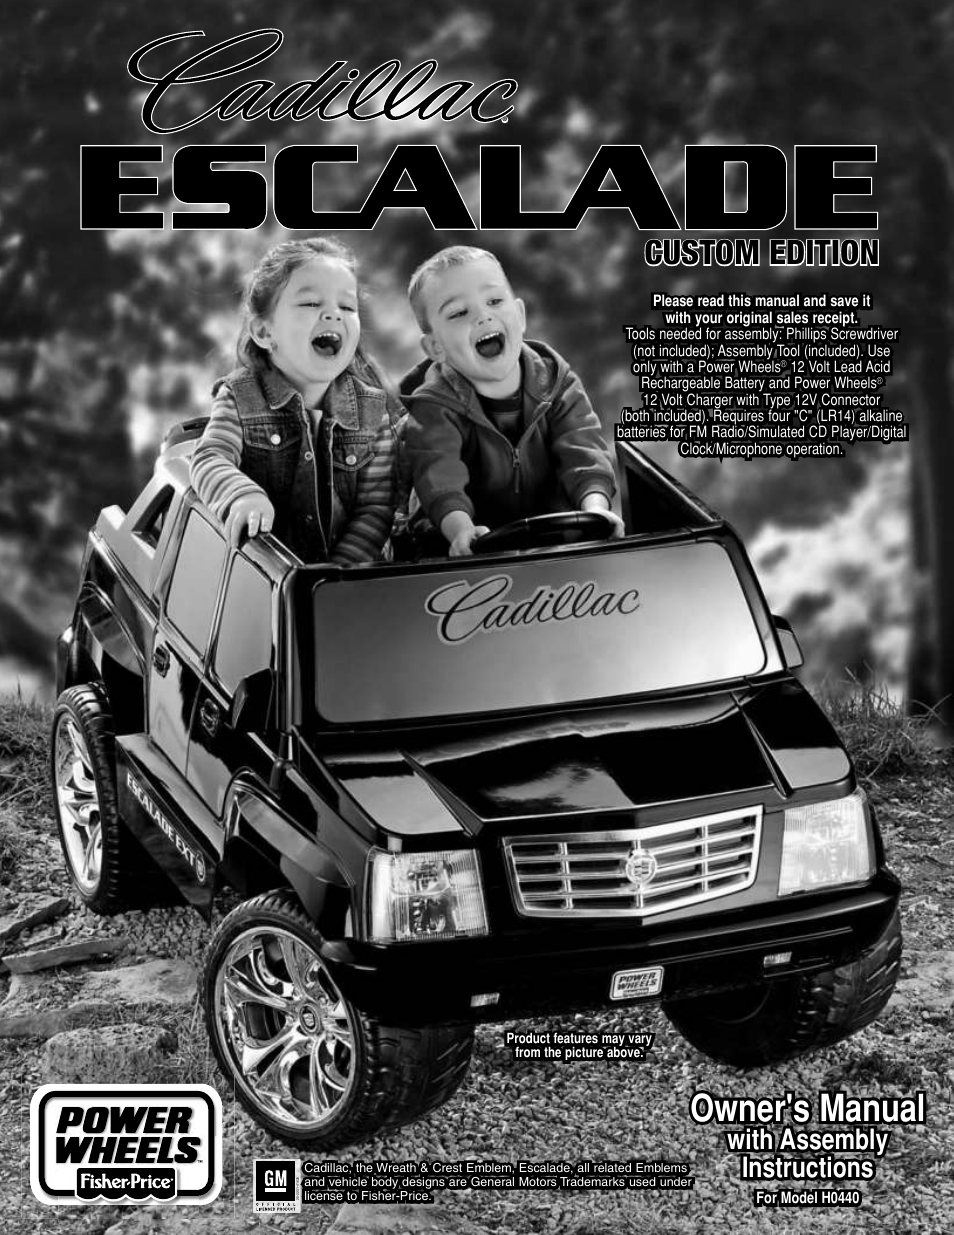 fisher price power wheels h0440 user manual 36 pages also for rh manualsdir com Custom Power Wheels Escalade Power Wheels Escalade Hybrid